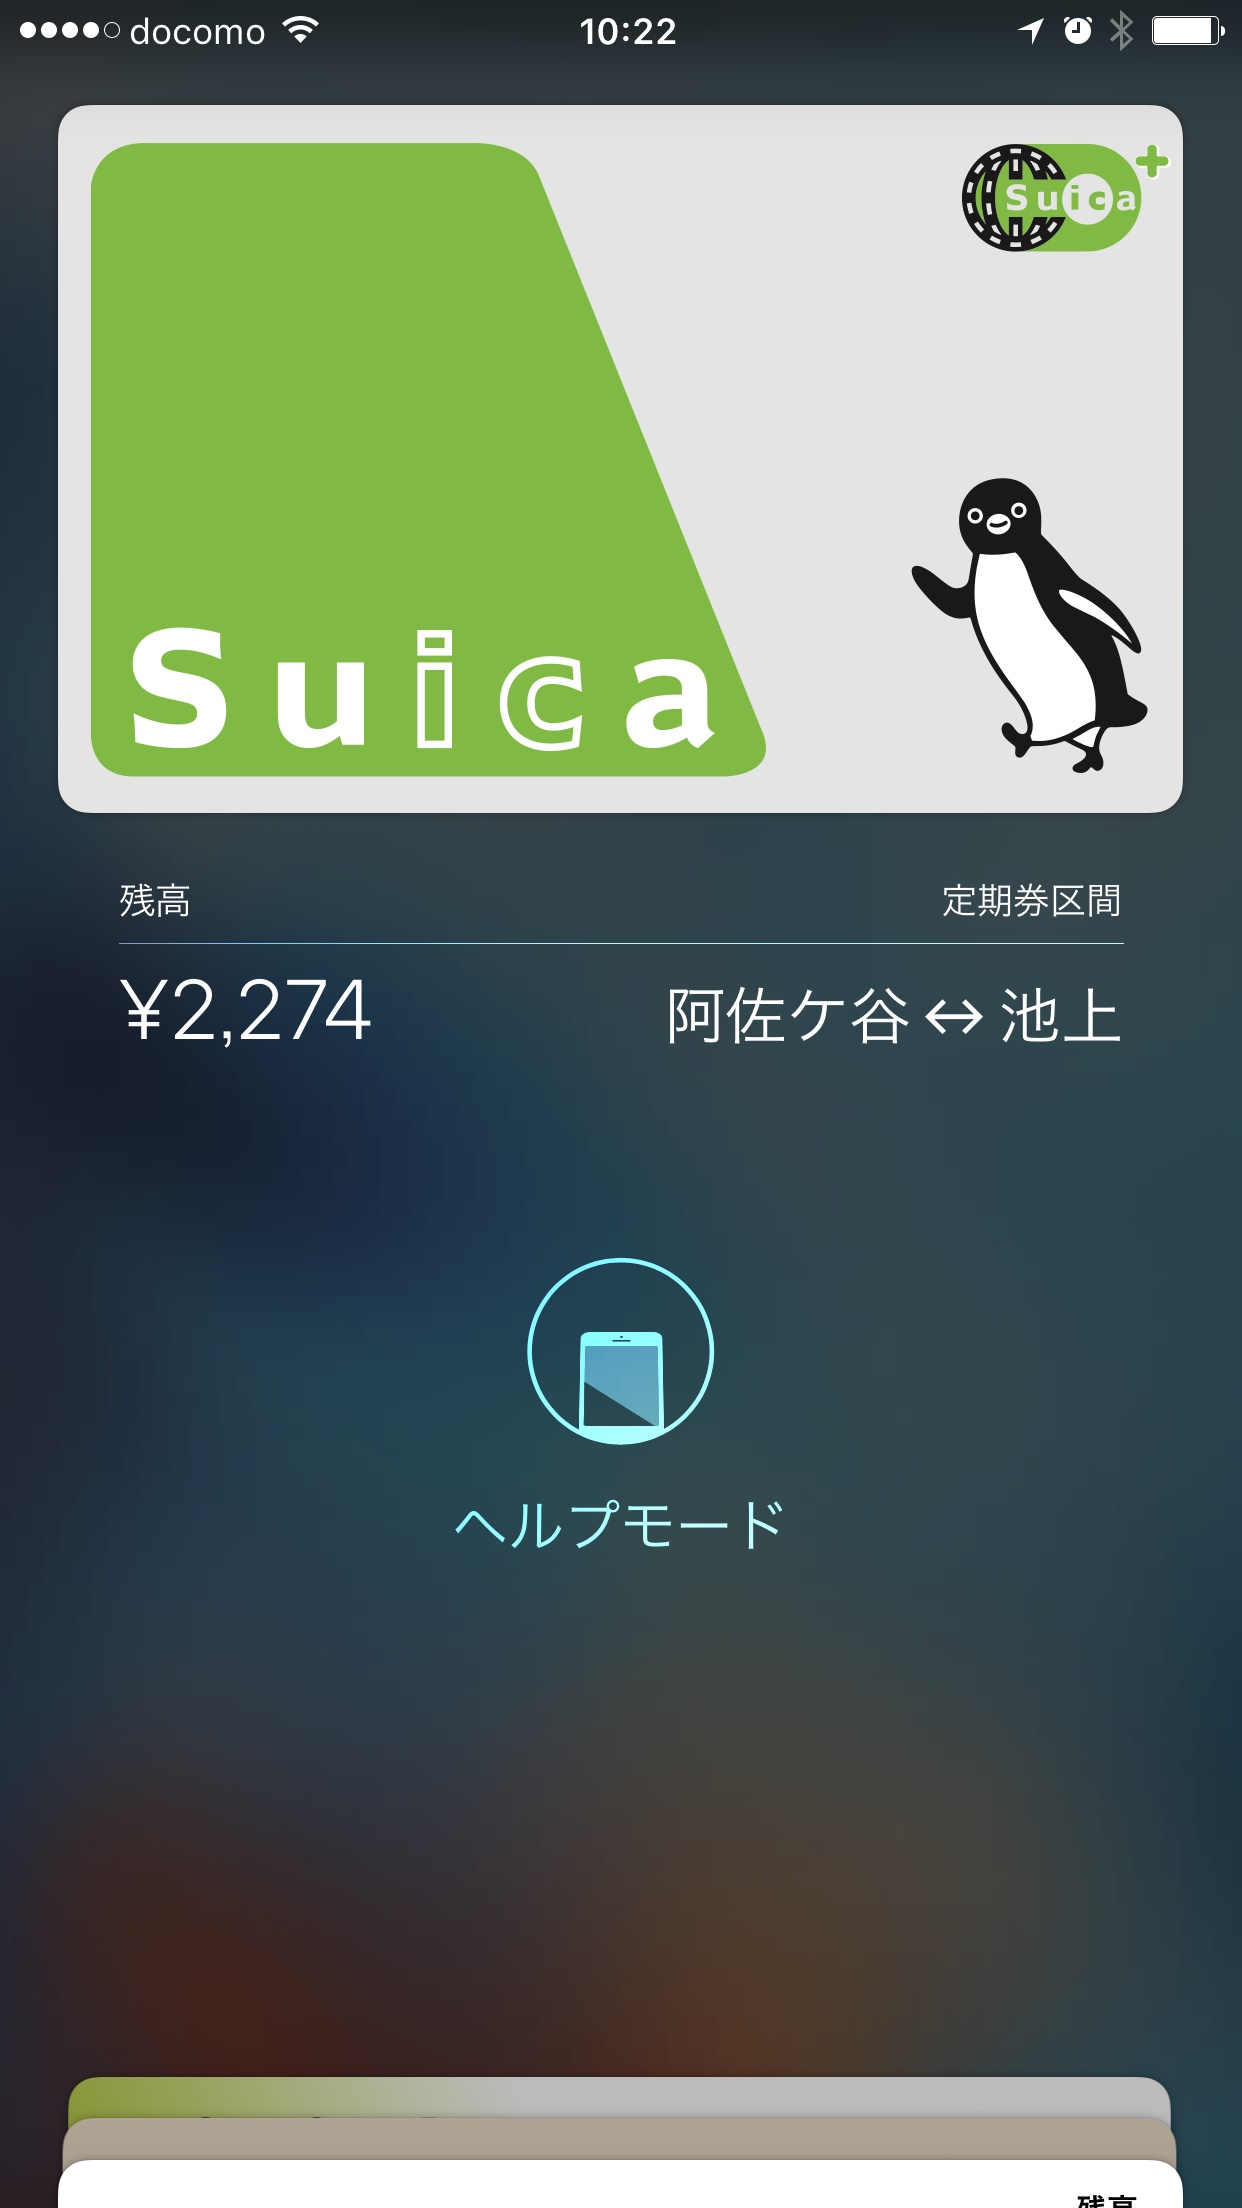 After TouchID verification you get confirmation that Suica Help Mode in on. You can close the screen, Suica notifications will be working again.